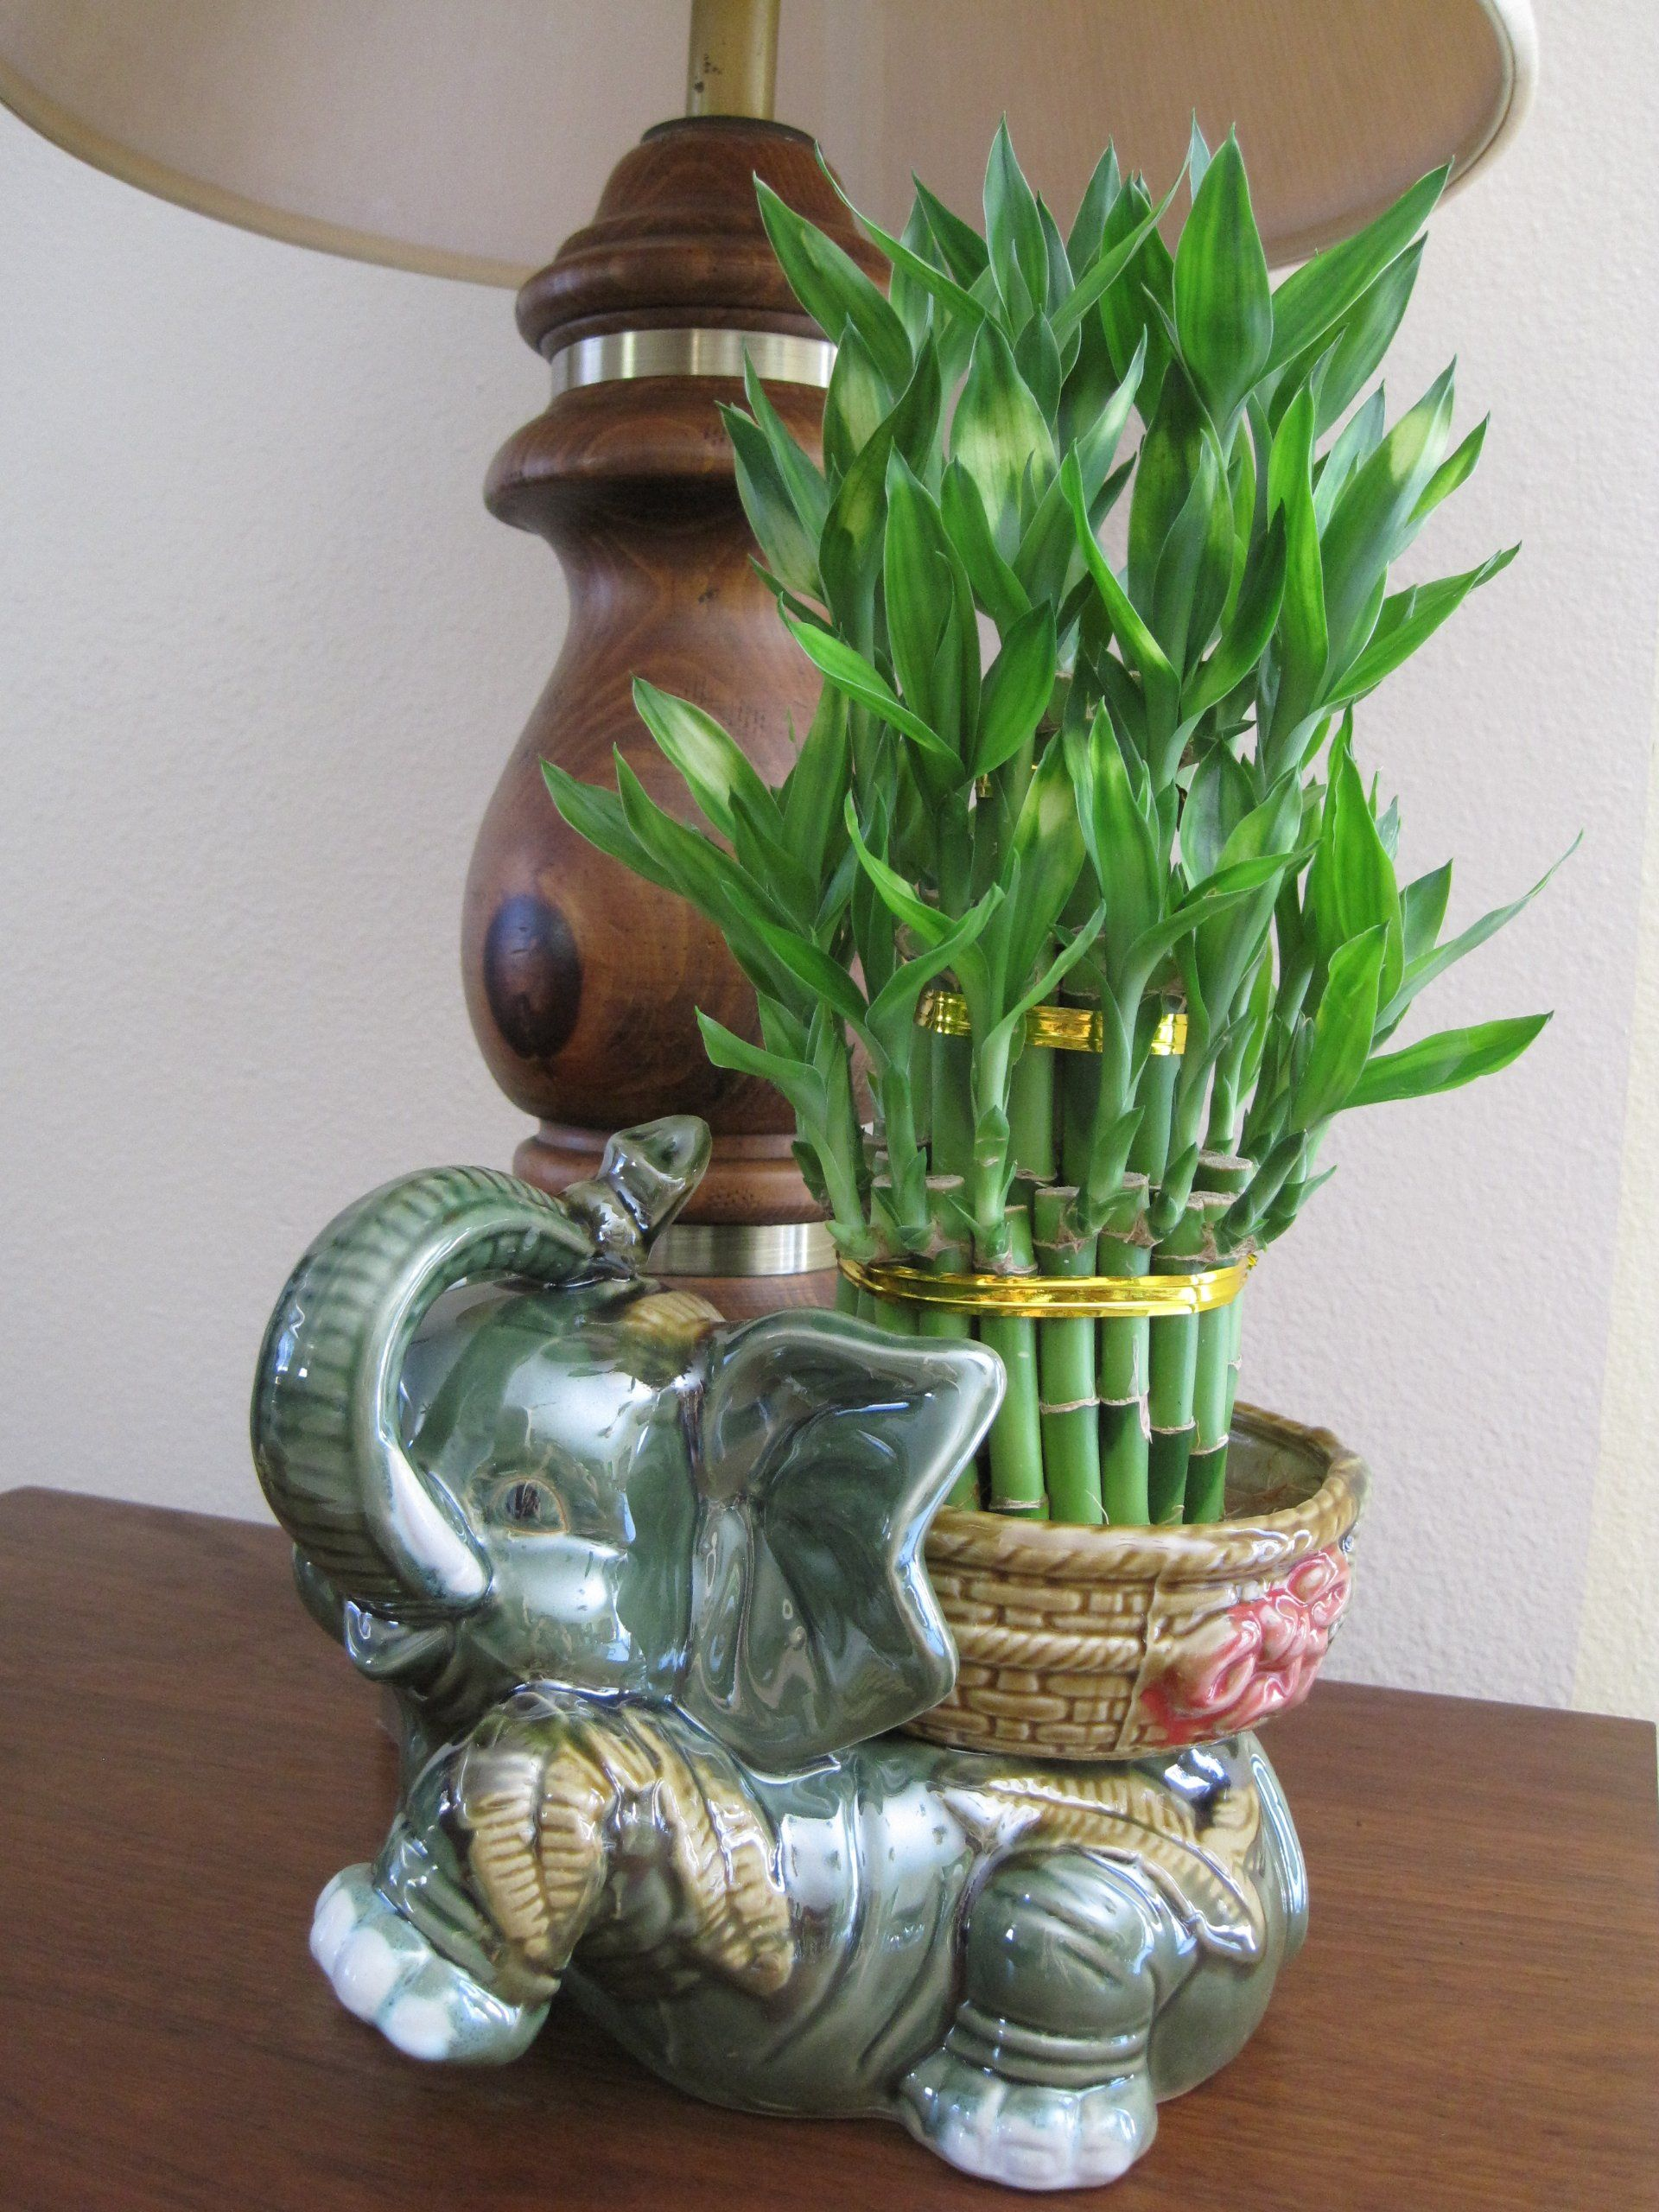 Bamboo Vase Decoration Lucky Bamboo And Lucky Elephant House Plants Lucky